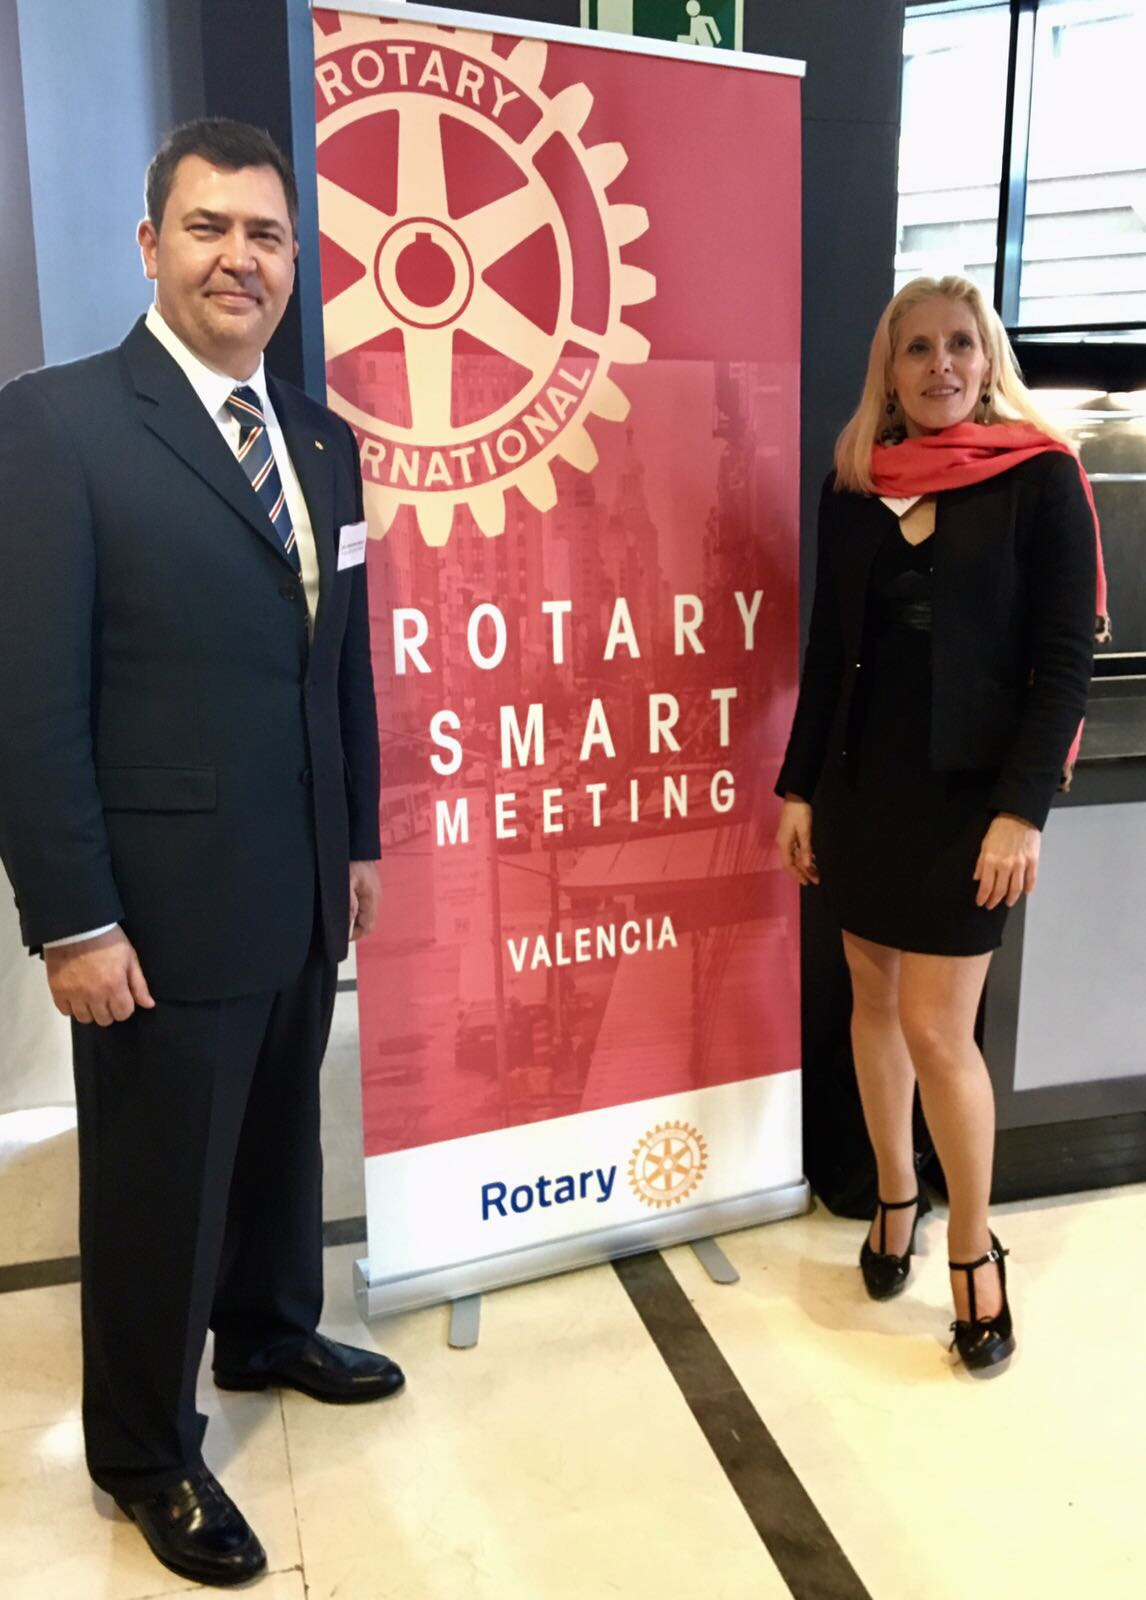 Rotary Smart Meeting Valencia